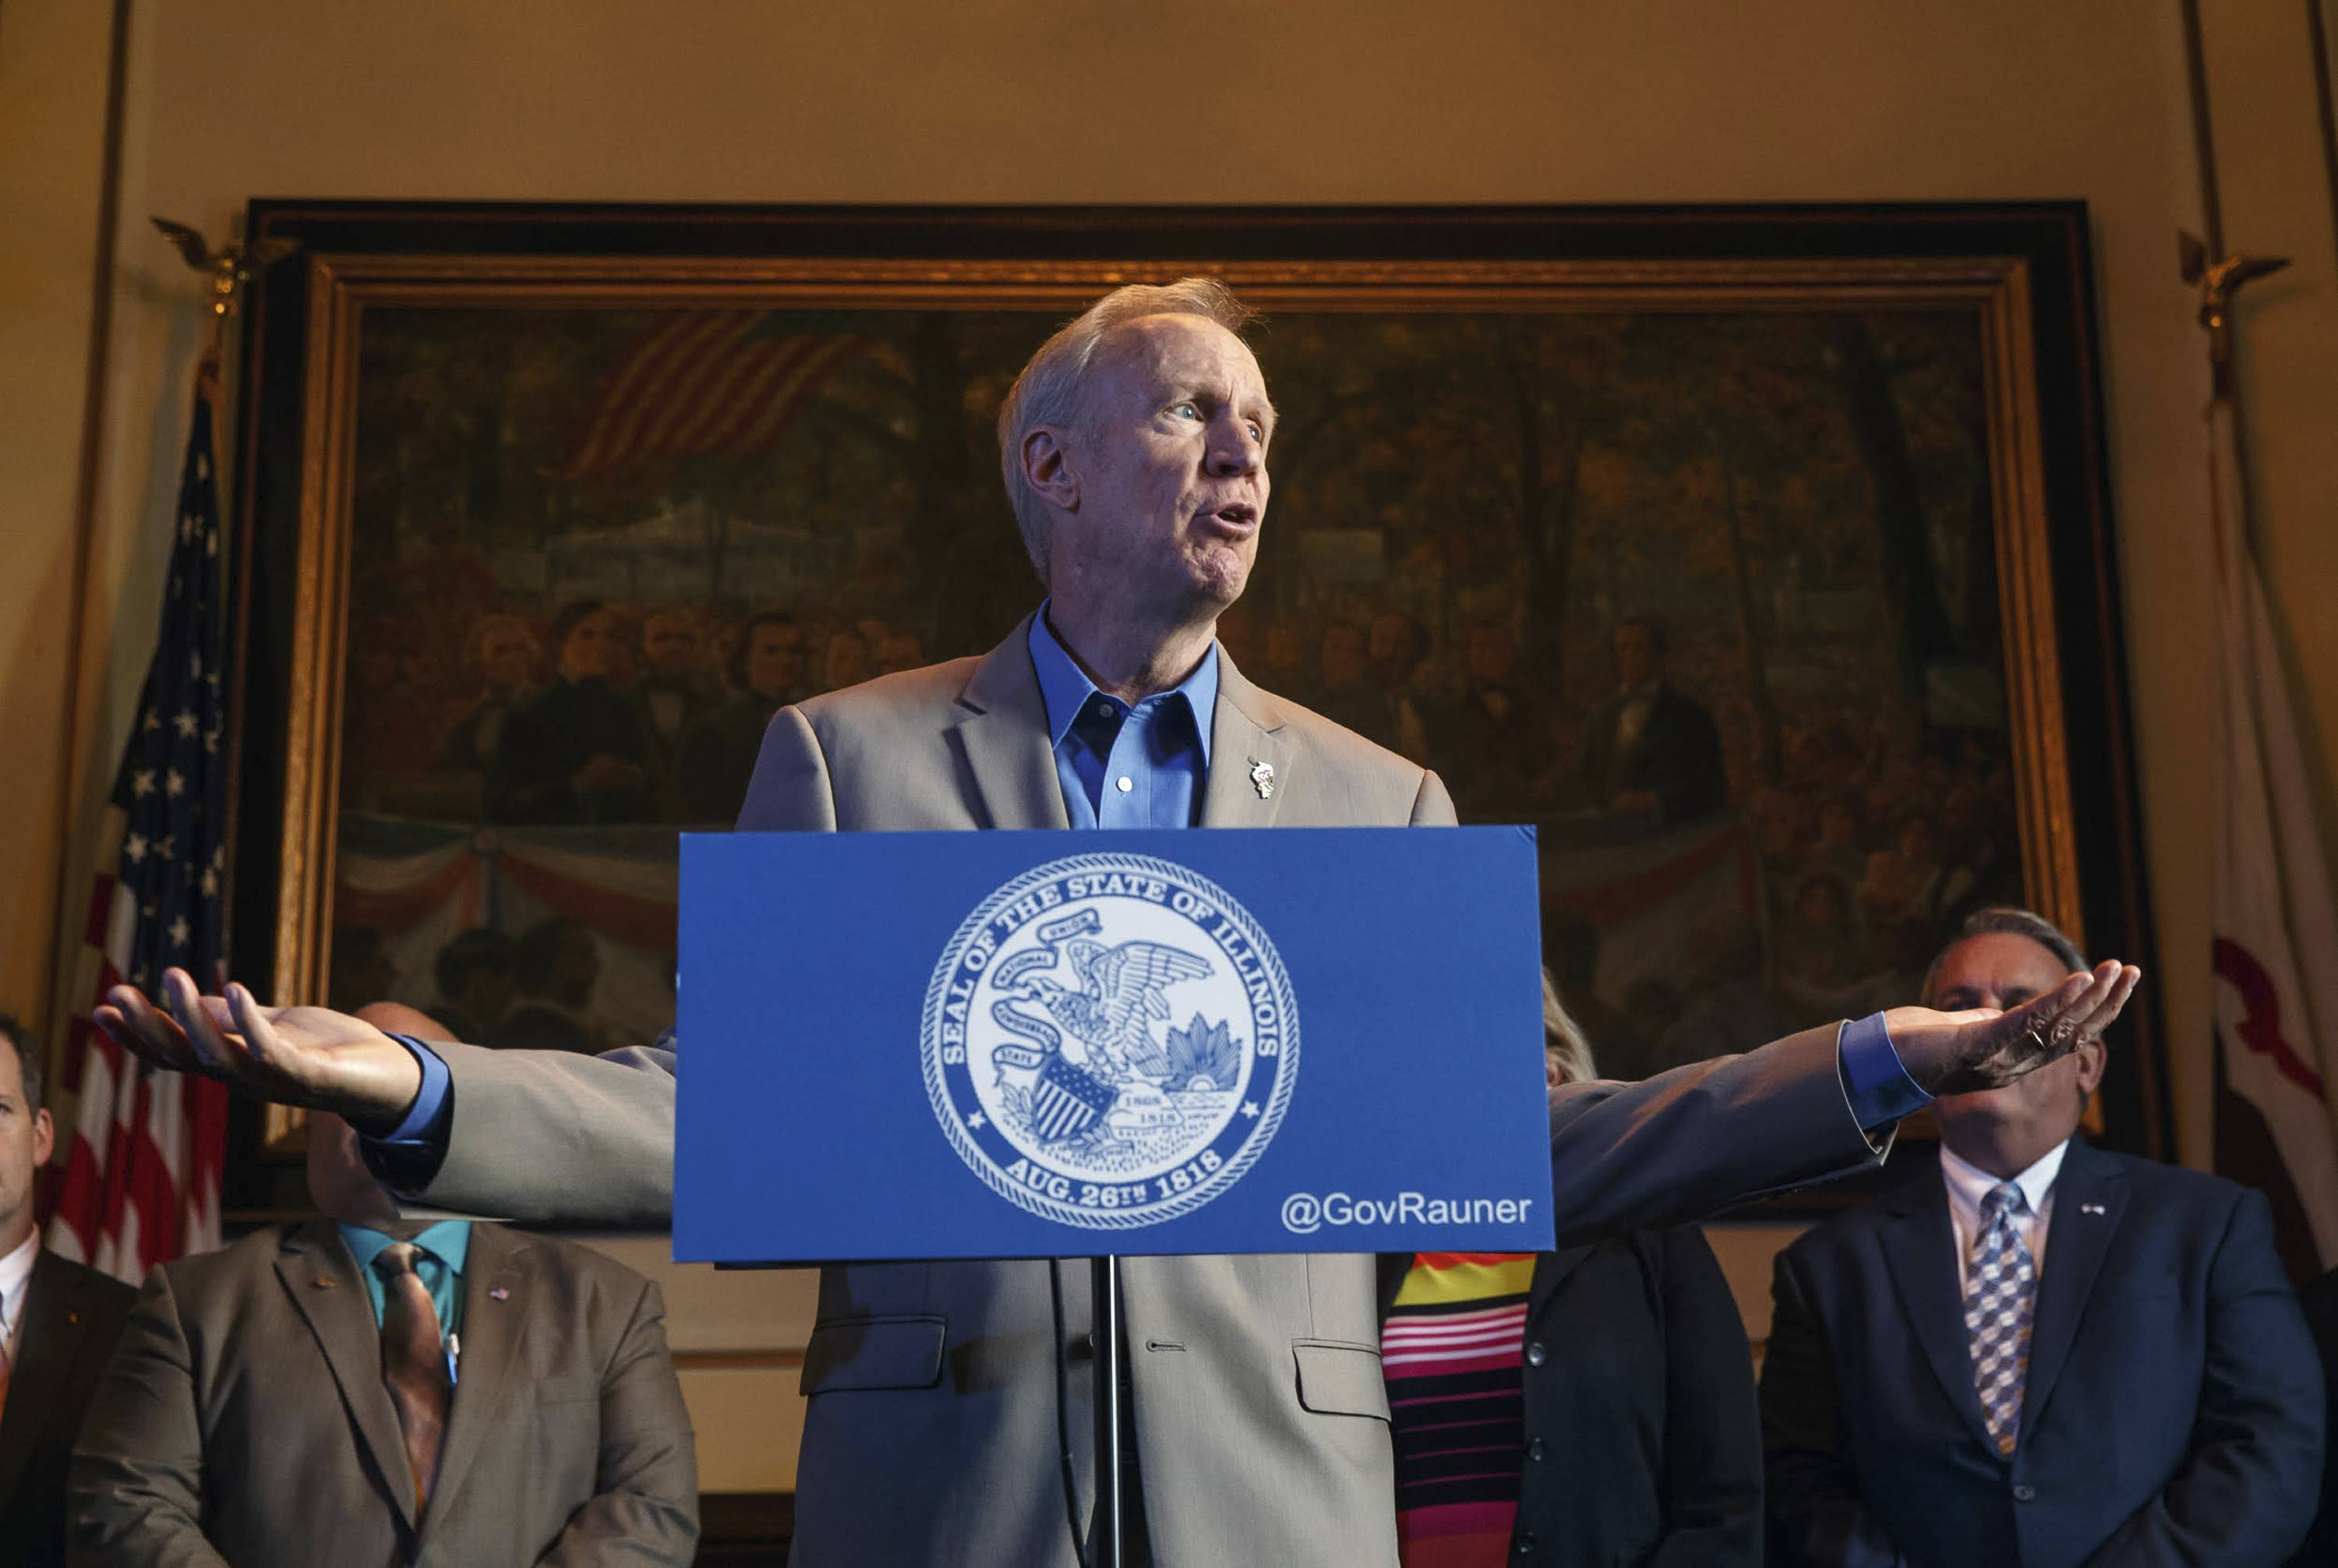 Not in charge? Rauner's foes pounce on his remark